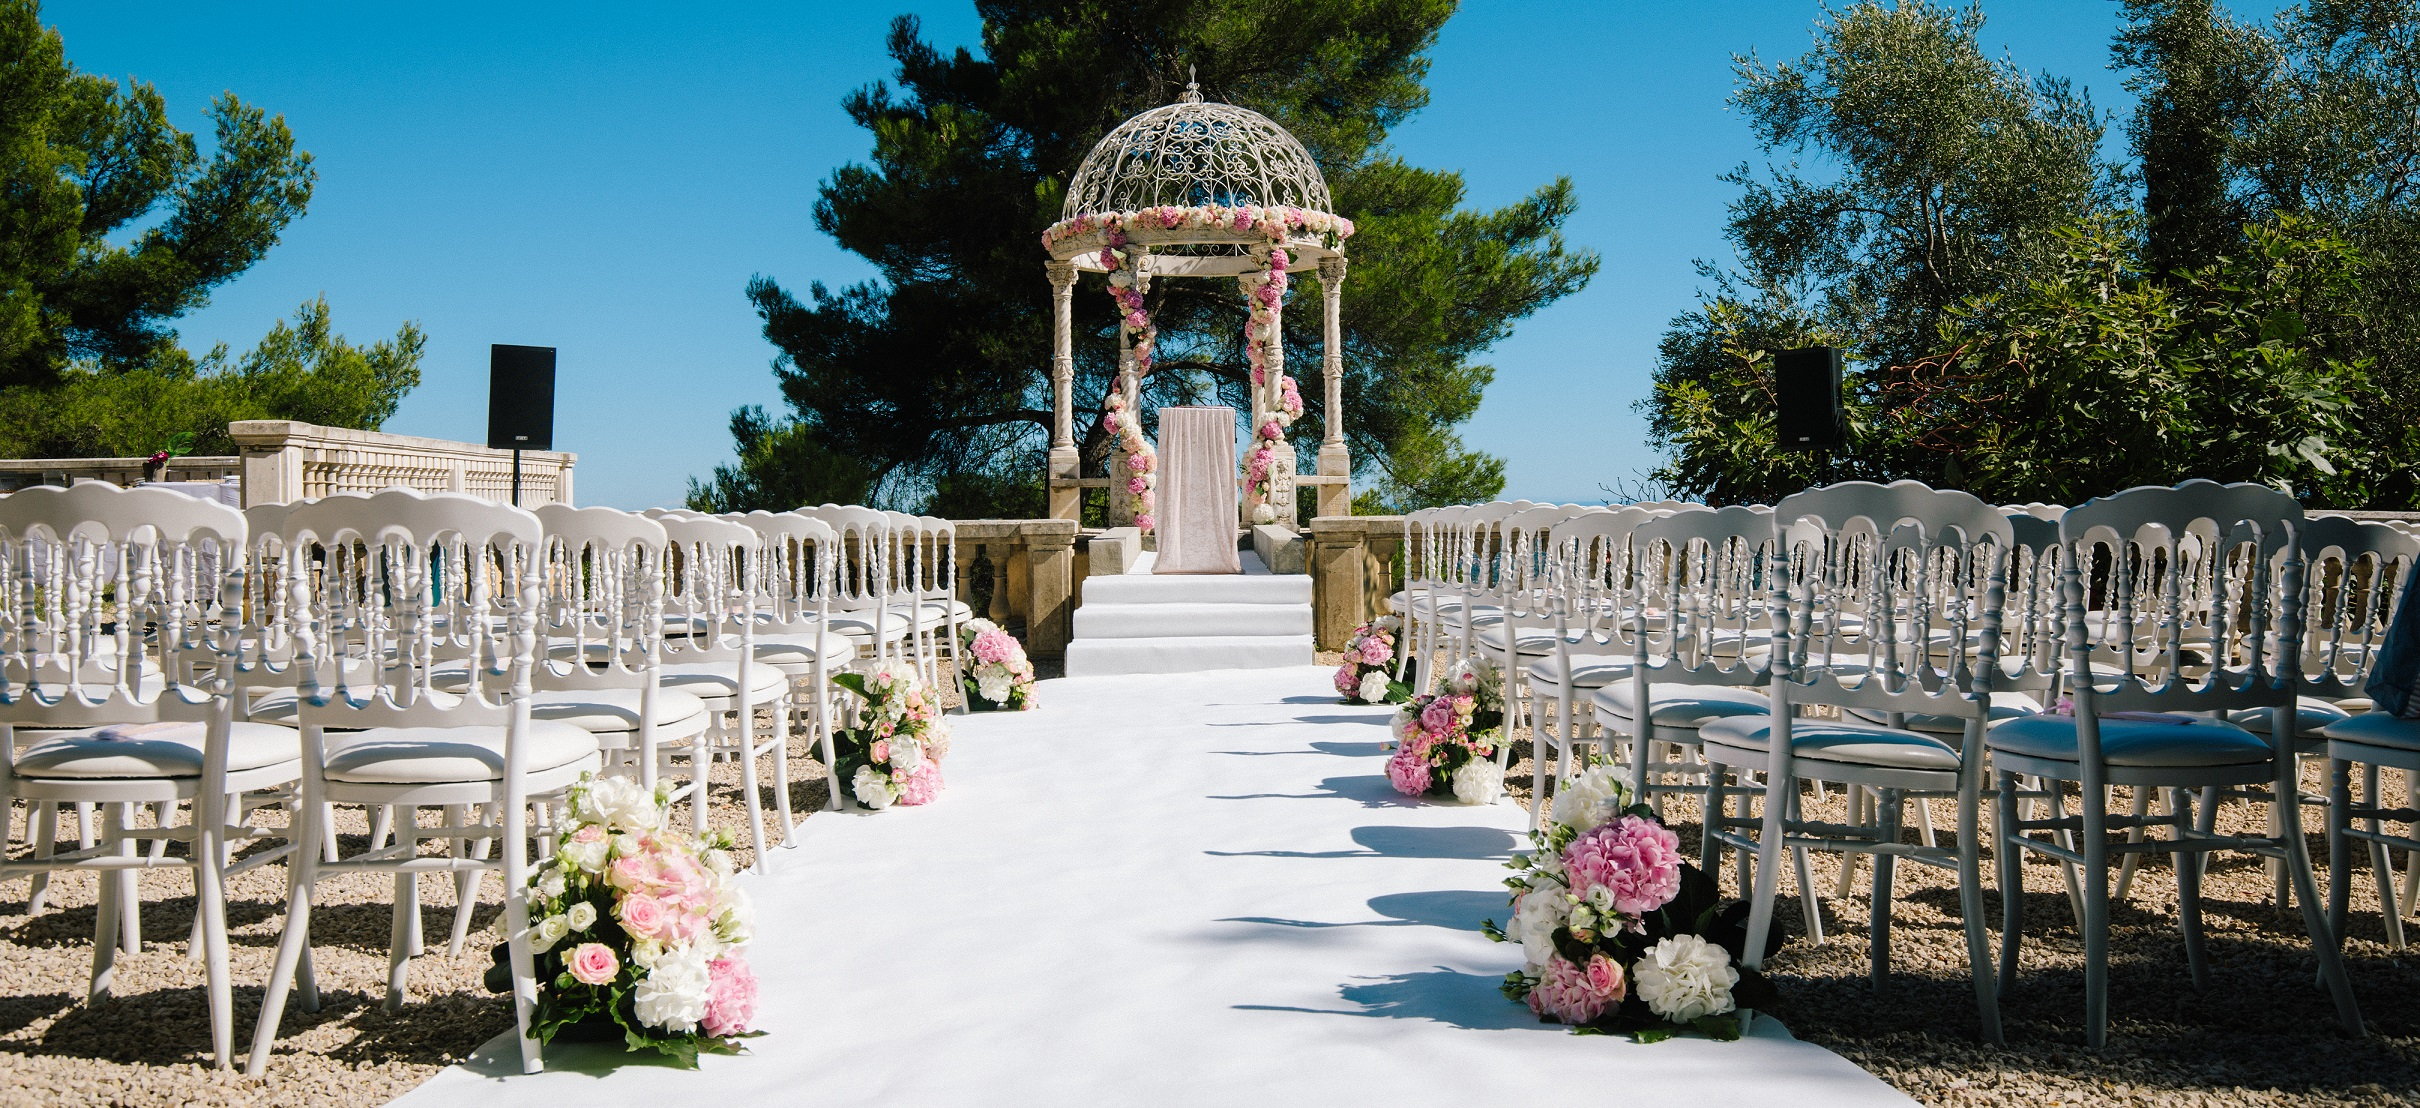 How To Choose Your South of France Wedding Venue